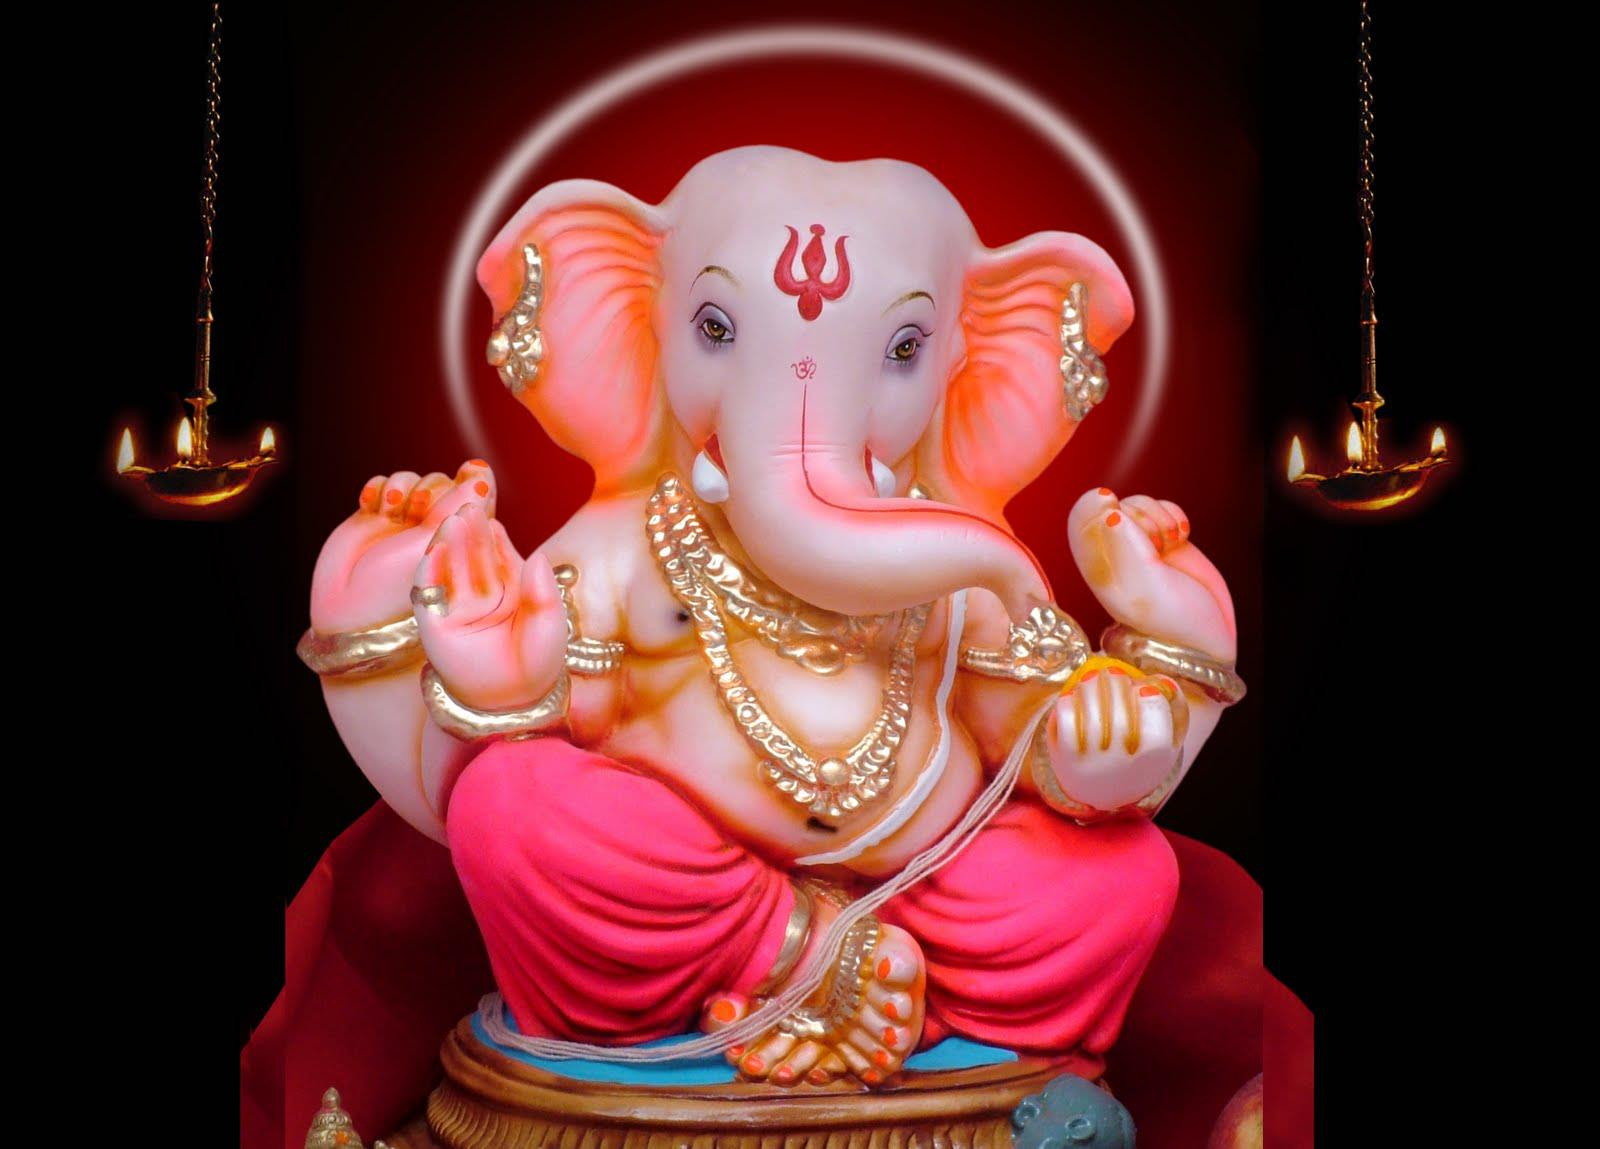 Urstruly Suresh: Lord Ganesh Wallpapers For Mobile